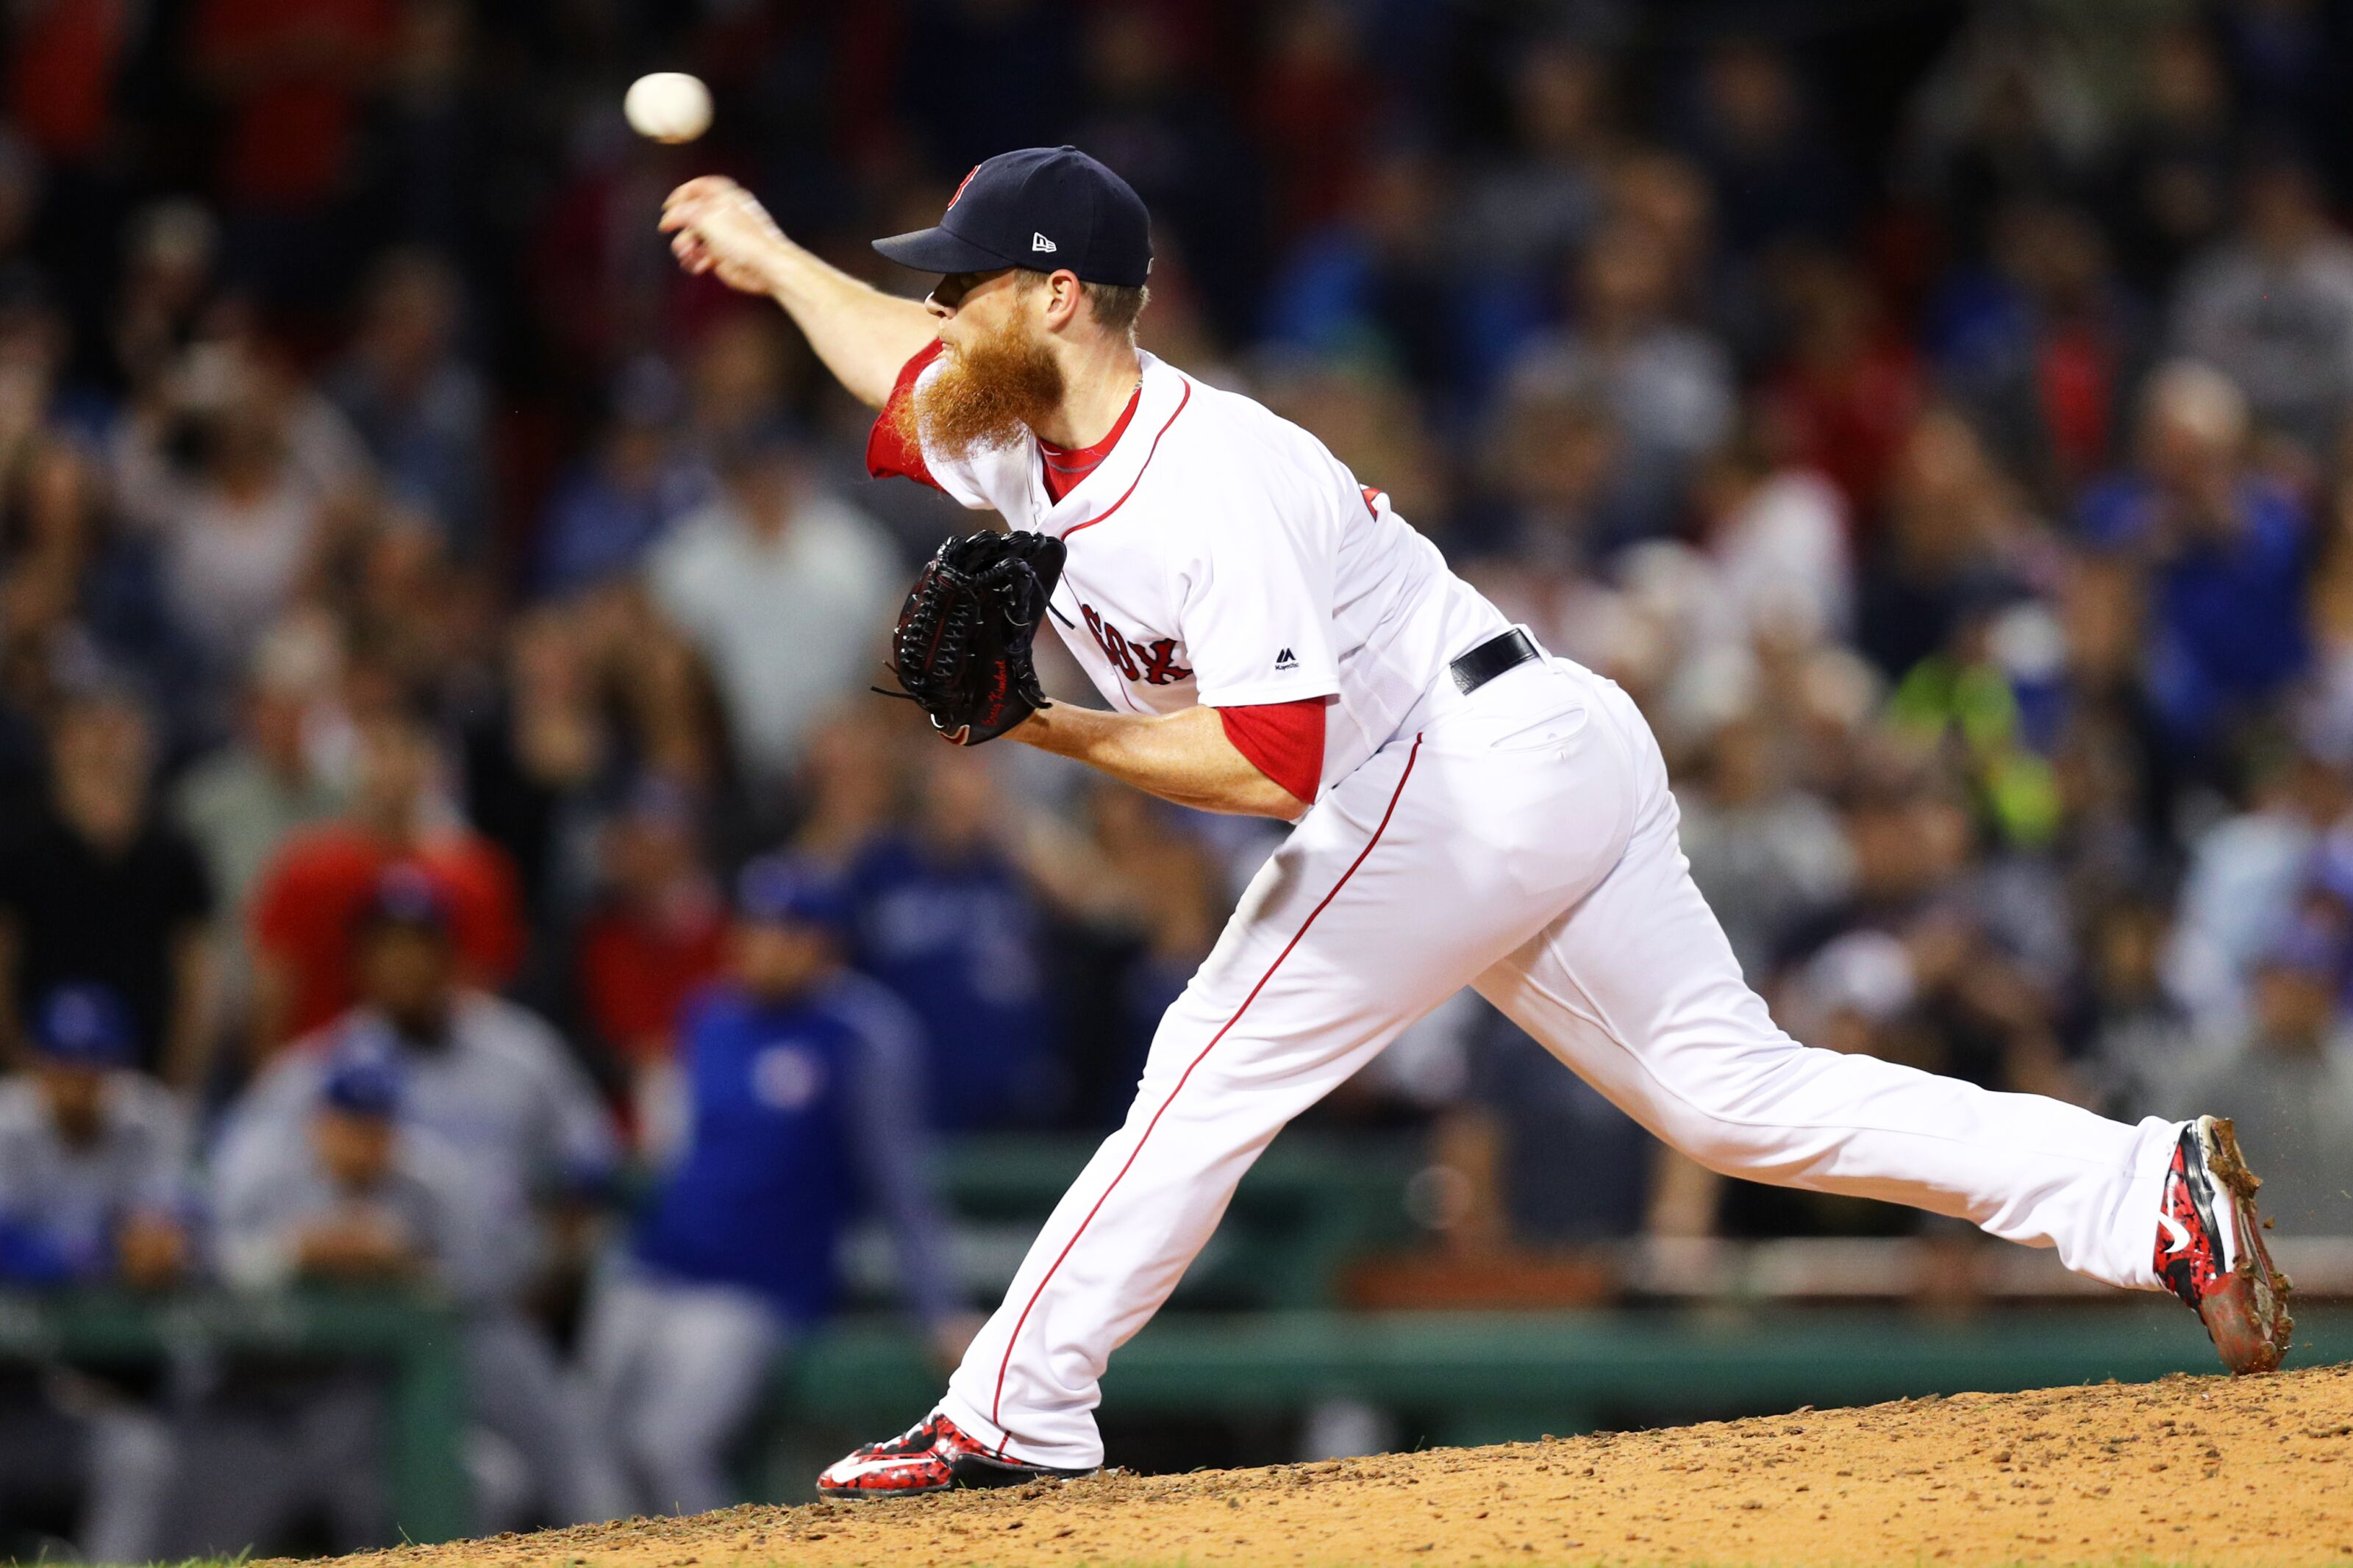 Boston Red Sox Report Cards: Right-handed reliever Craig Kimbrel